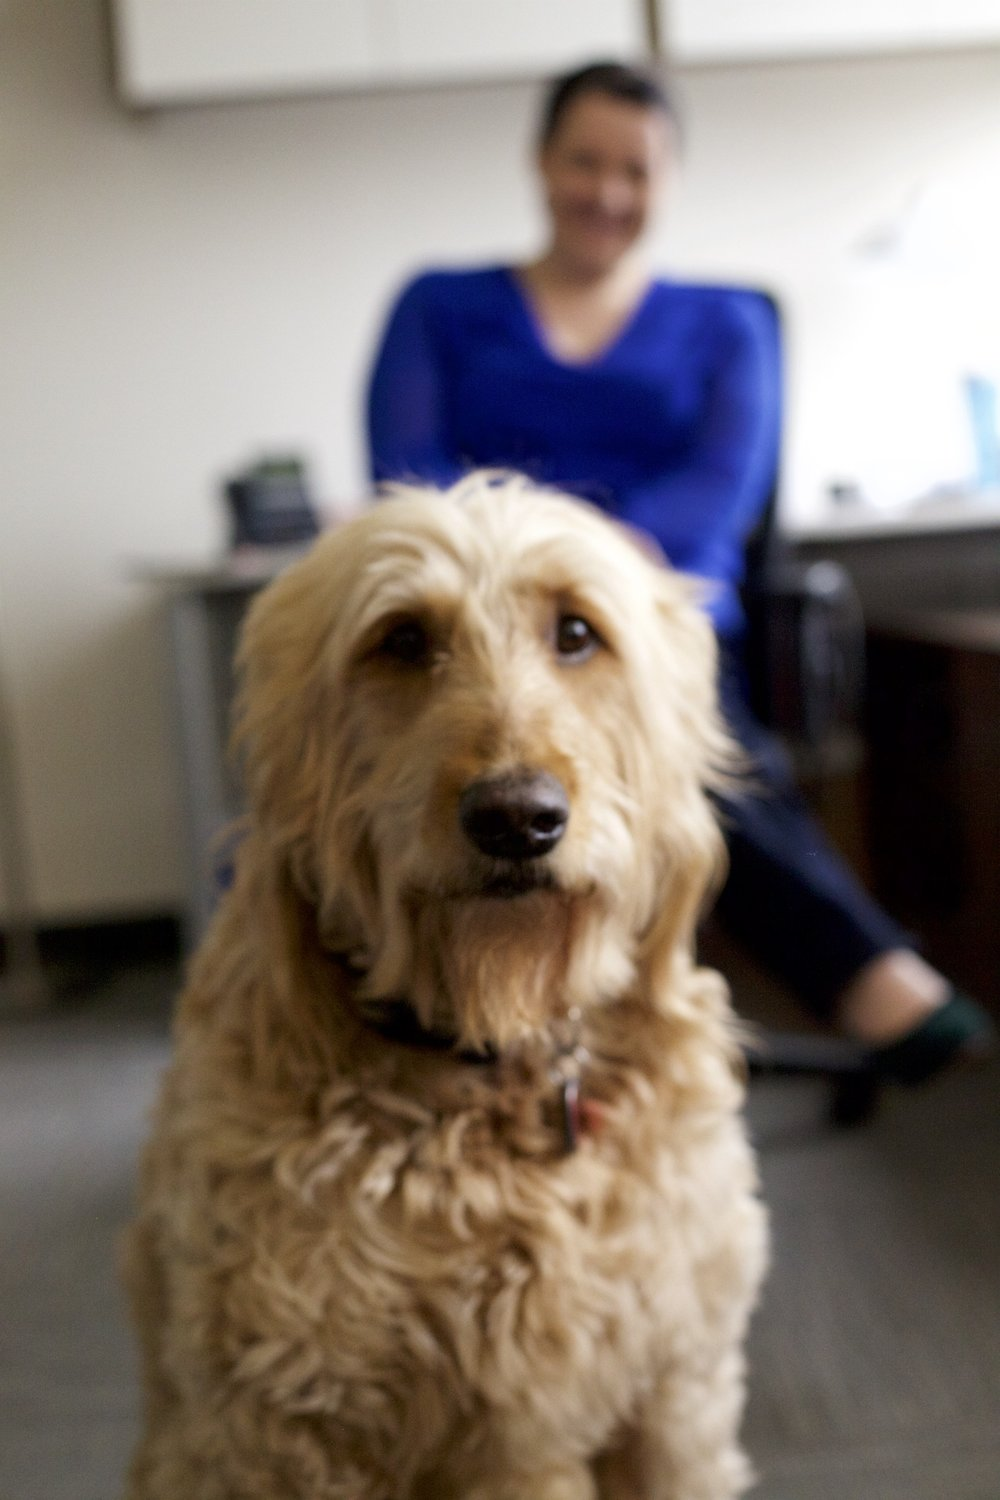 Meet Gus! Gus loves coming to work with me and I bring him every chance I get. He's a mellow and very lovable Golden Doodle.